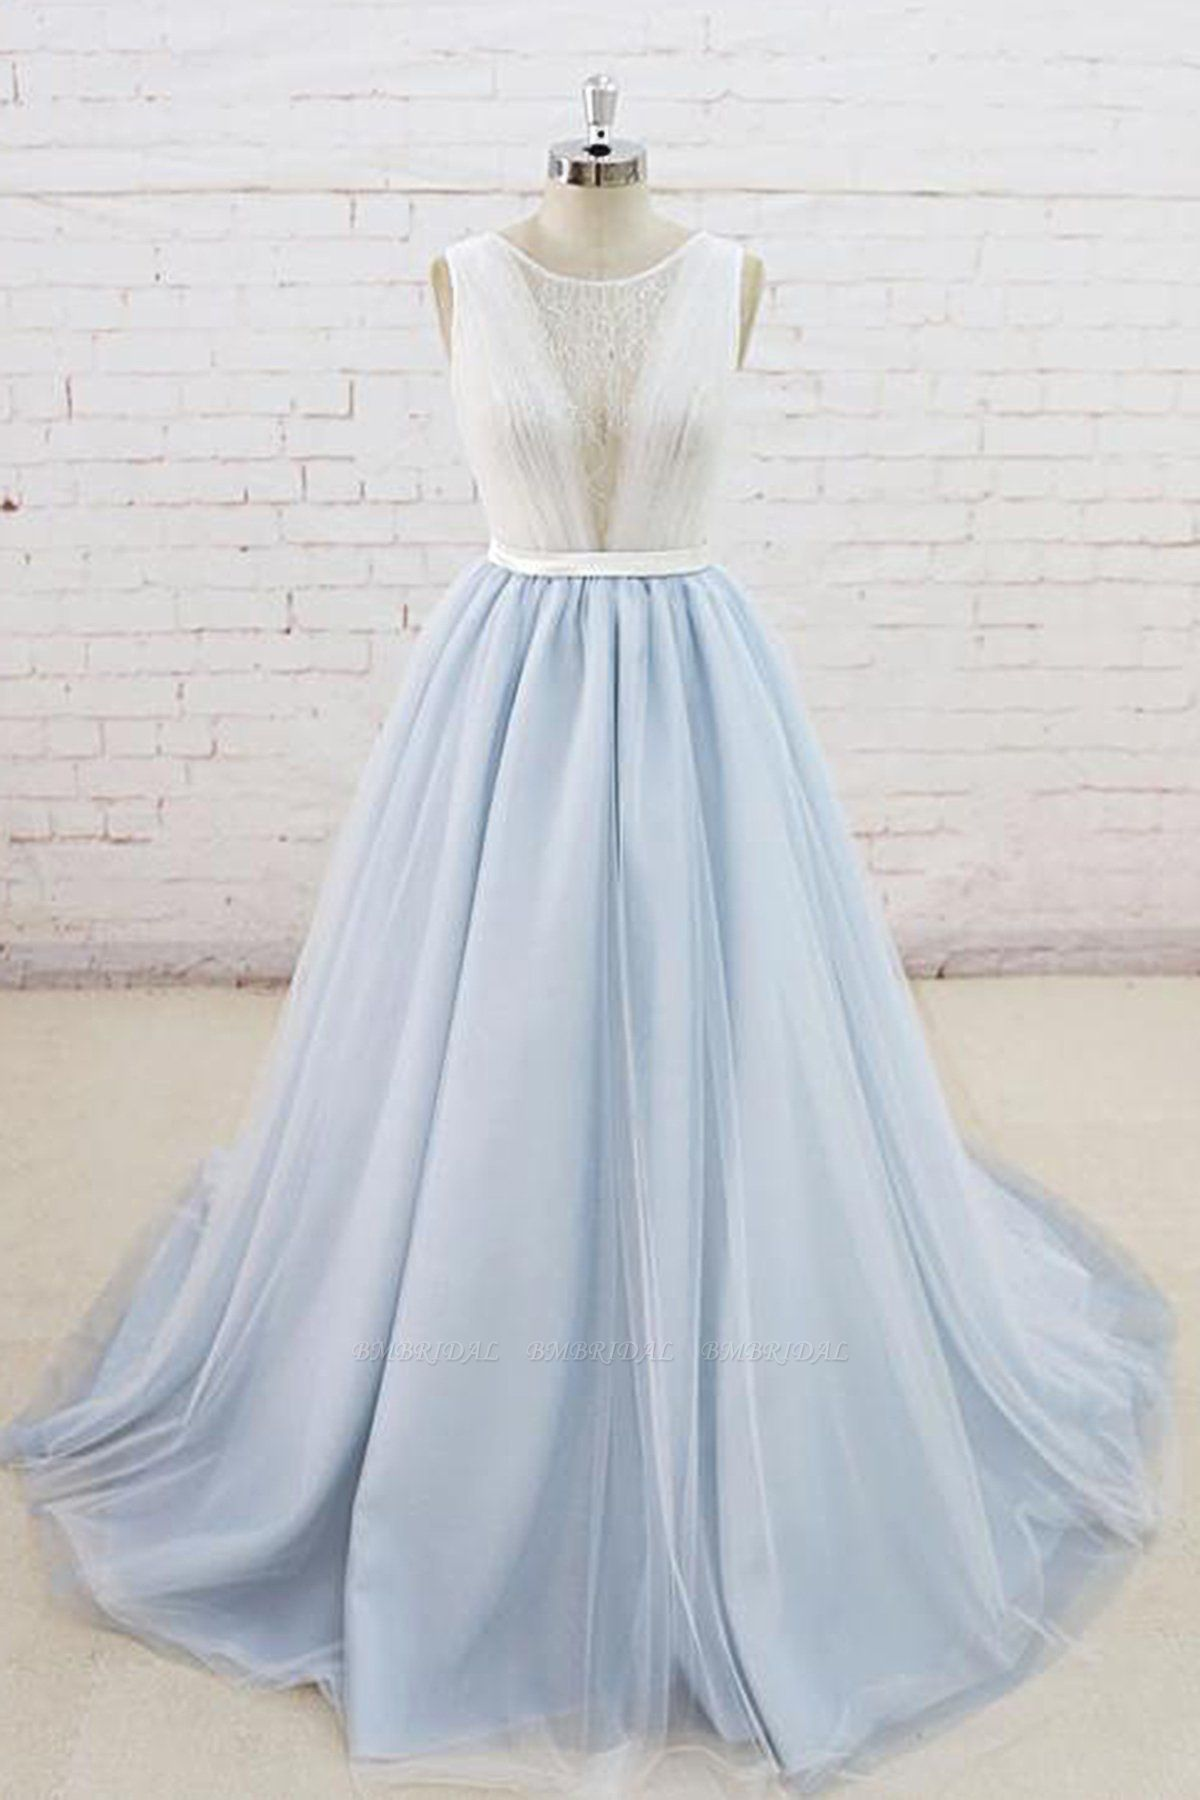 Gorgeous Light Blue Tulle Lace Wedding Dress Sheer Back Summer Bridal Gowns On Sale